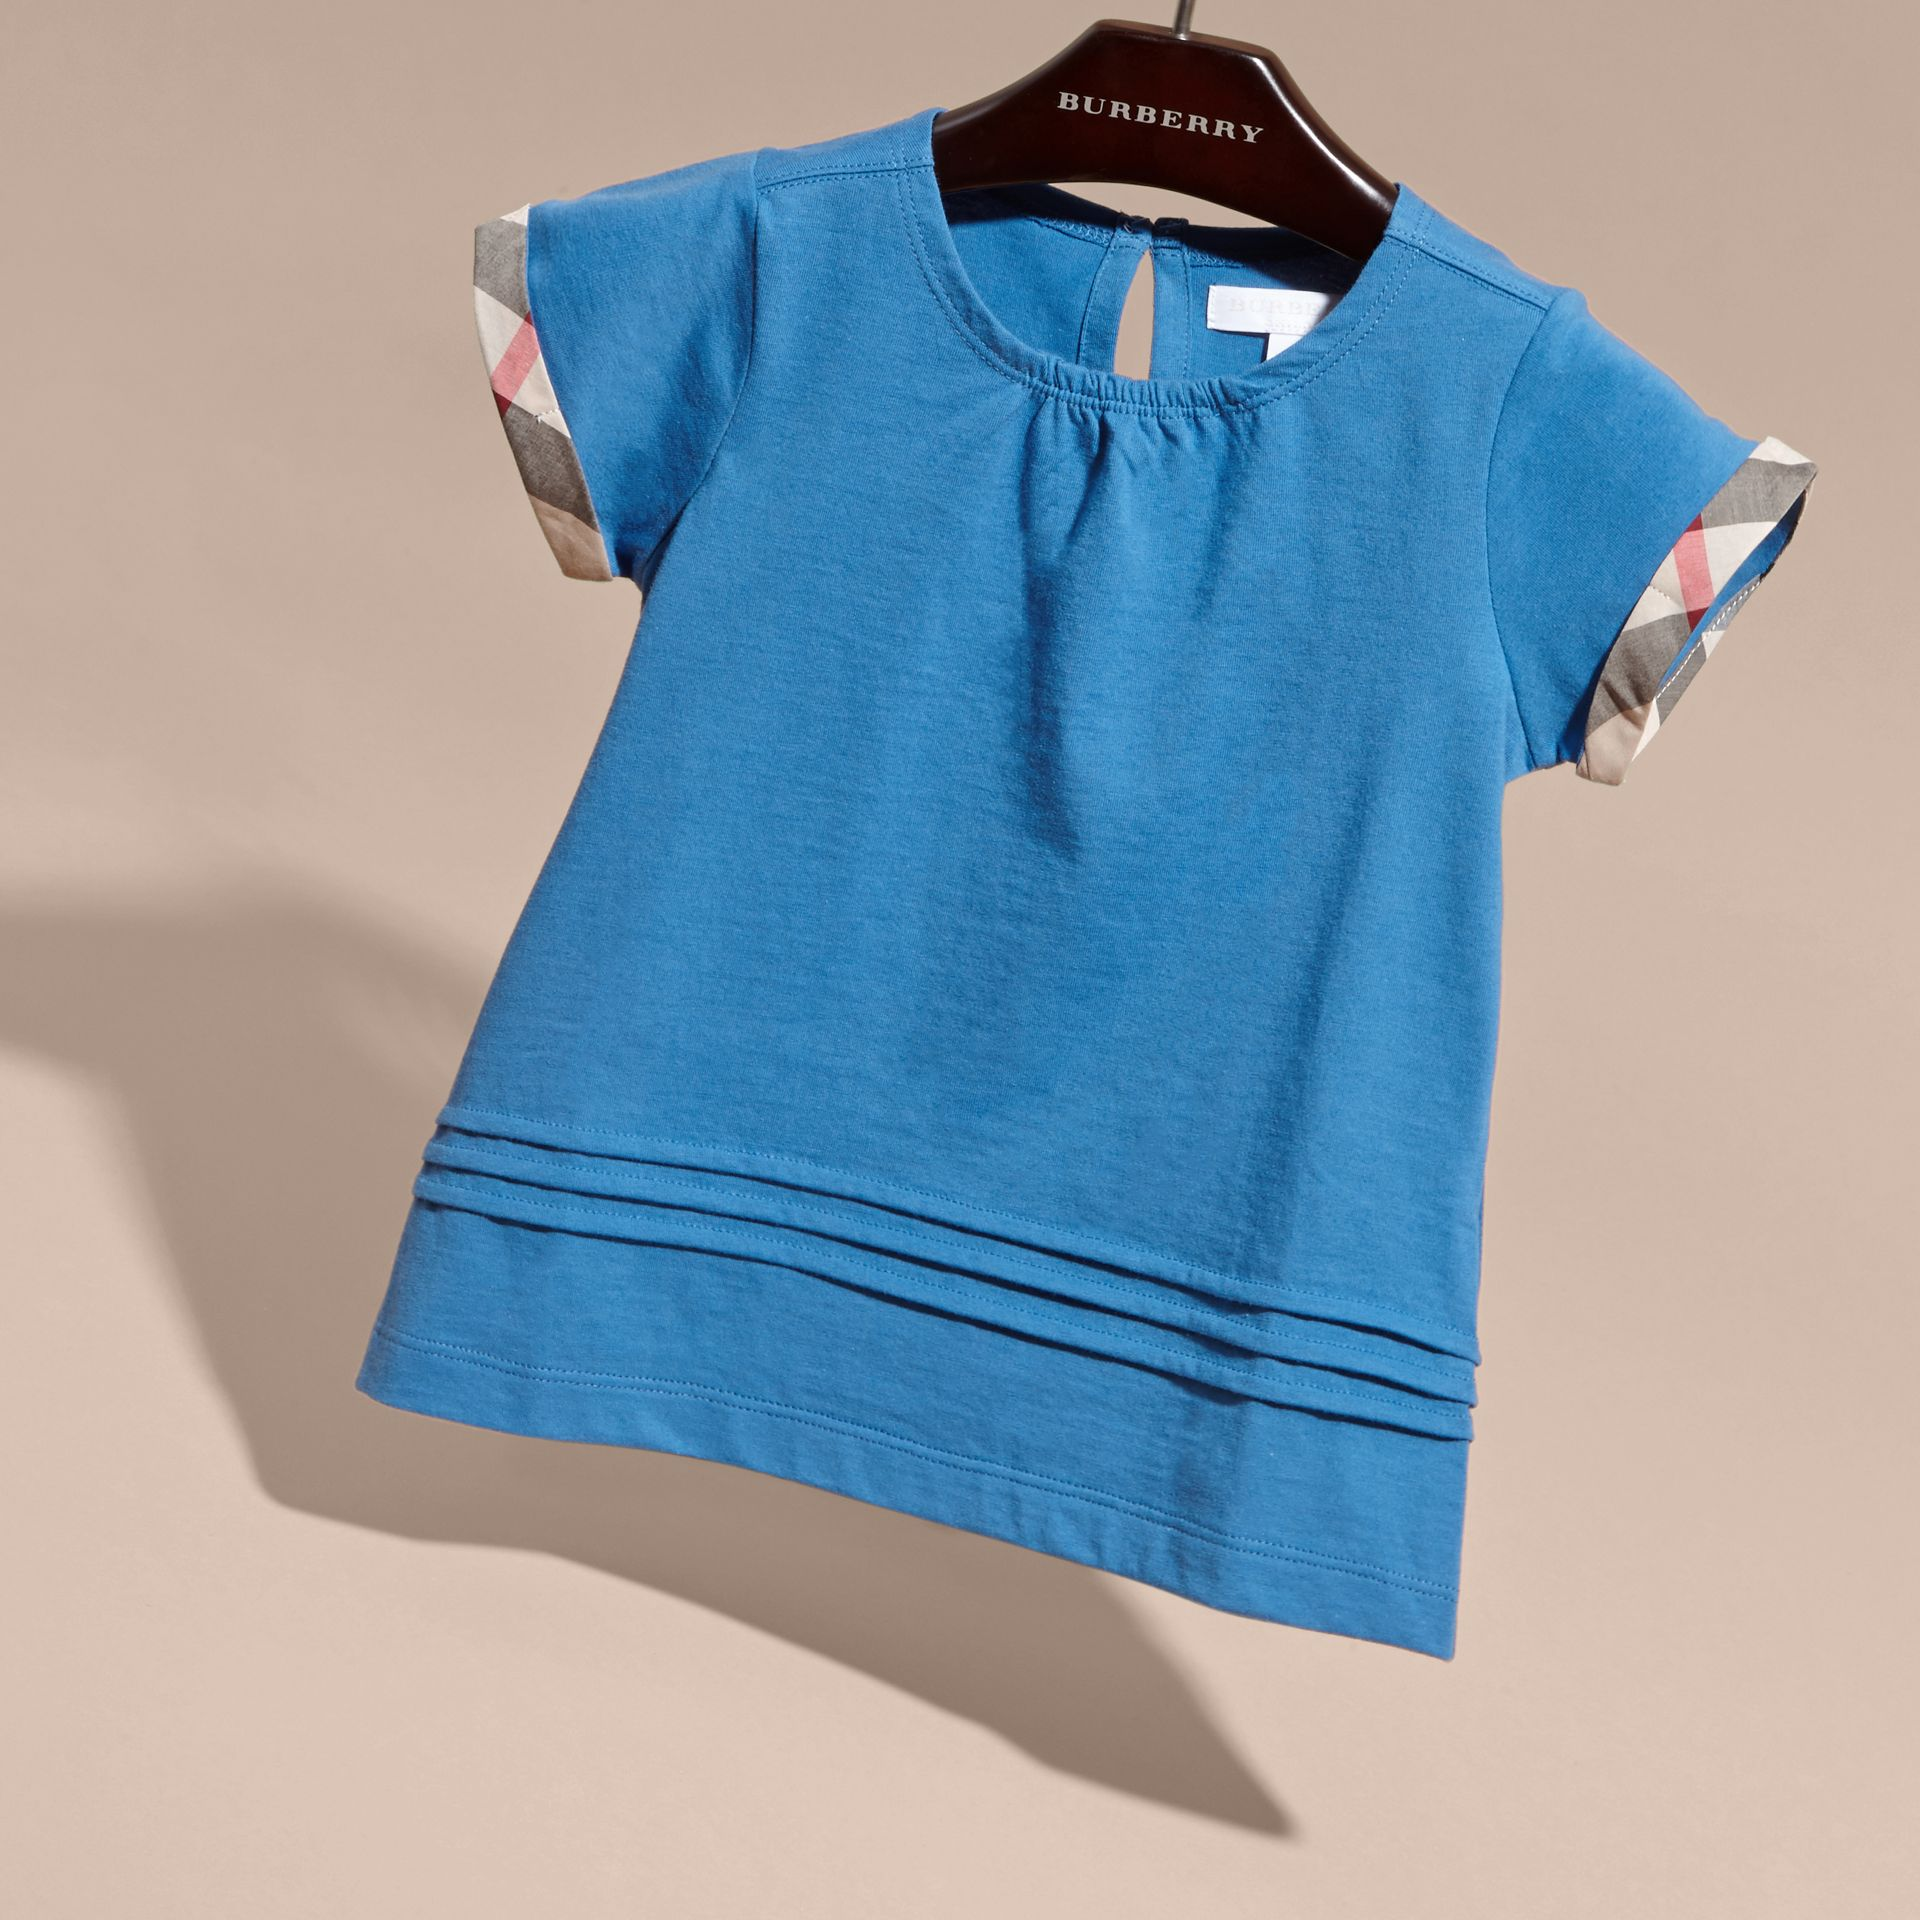 Pleat and Check Detail Cotton T-shirt Hydrangea Blue - gallery image 3